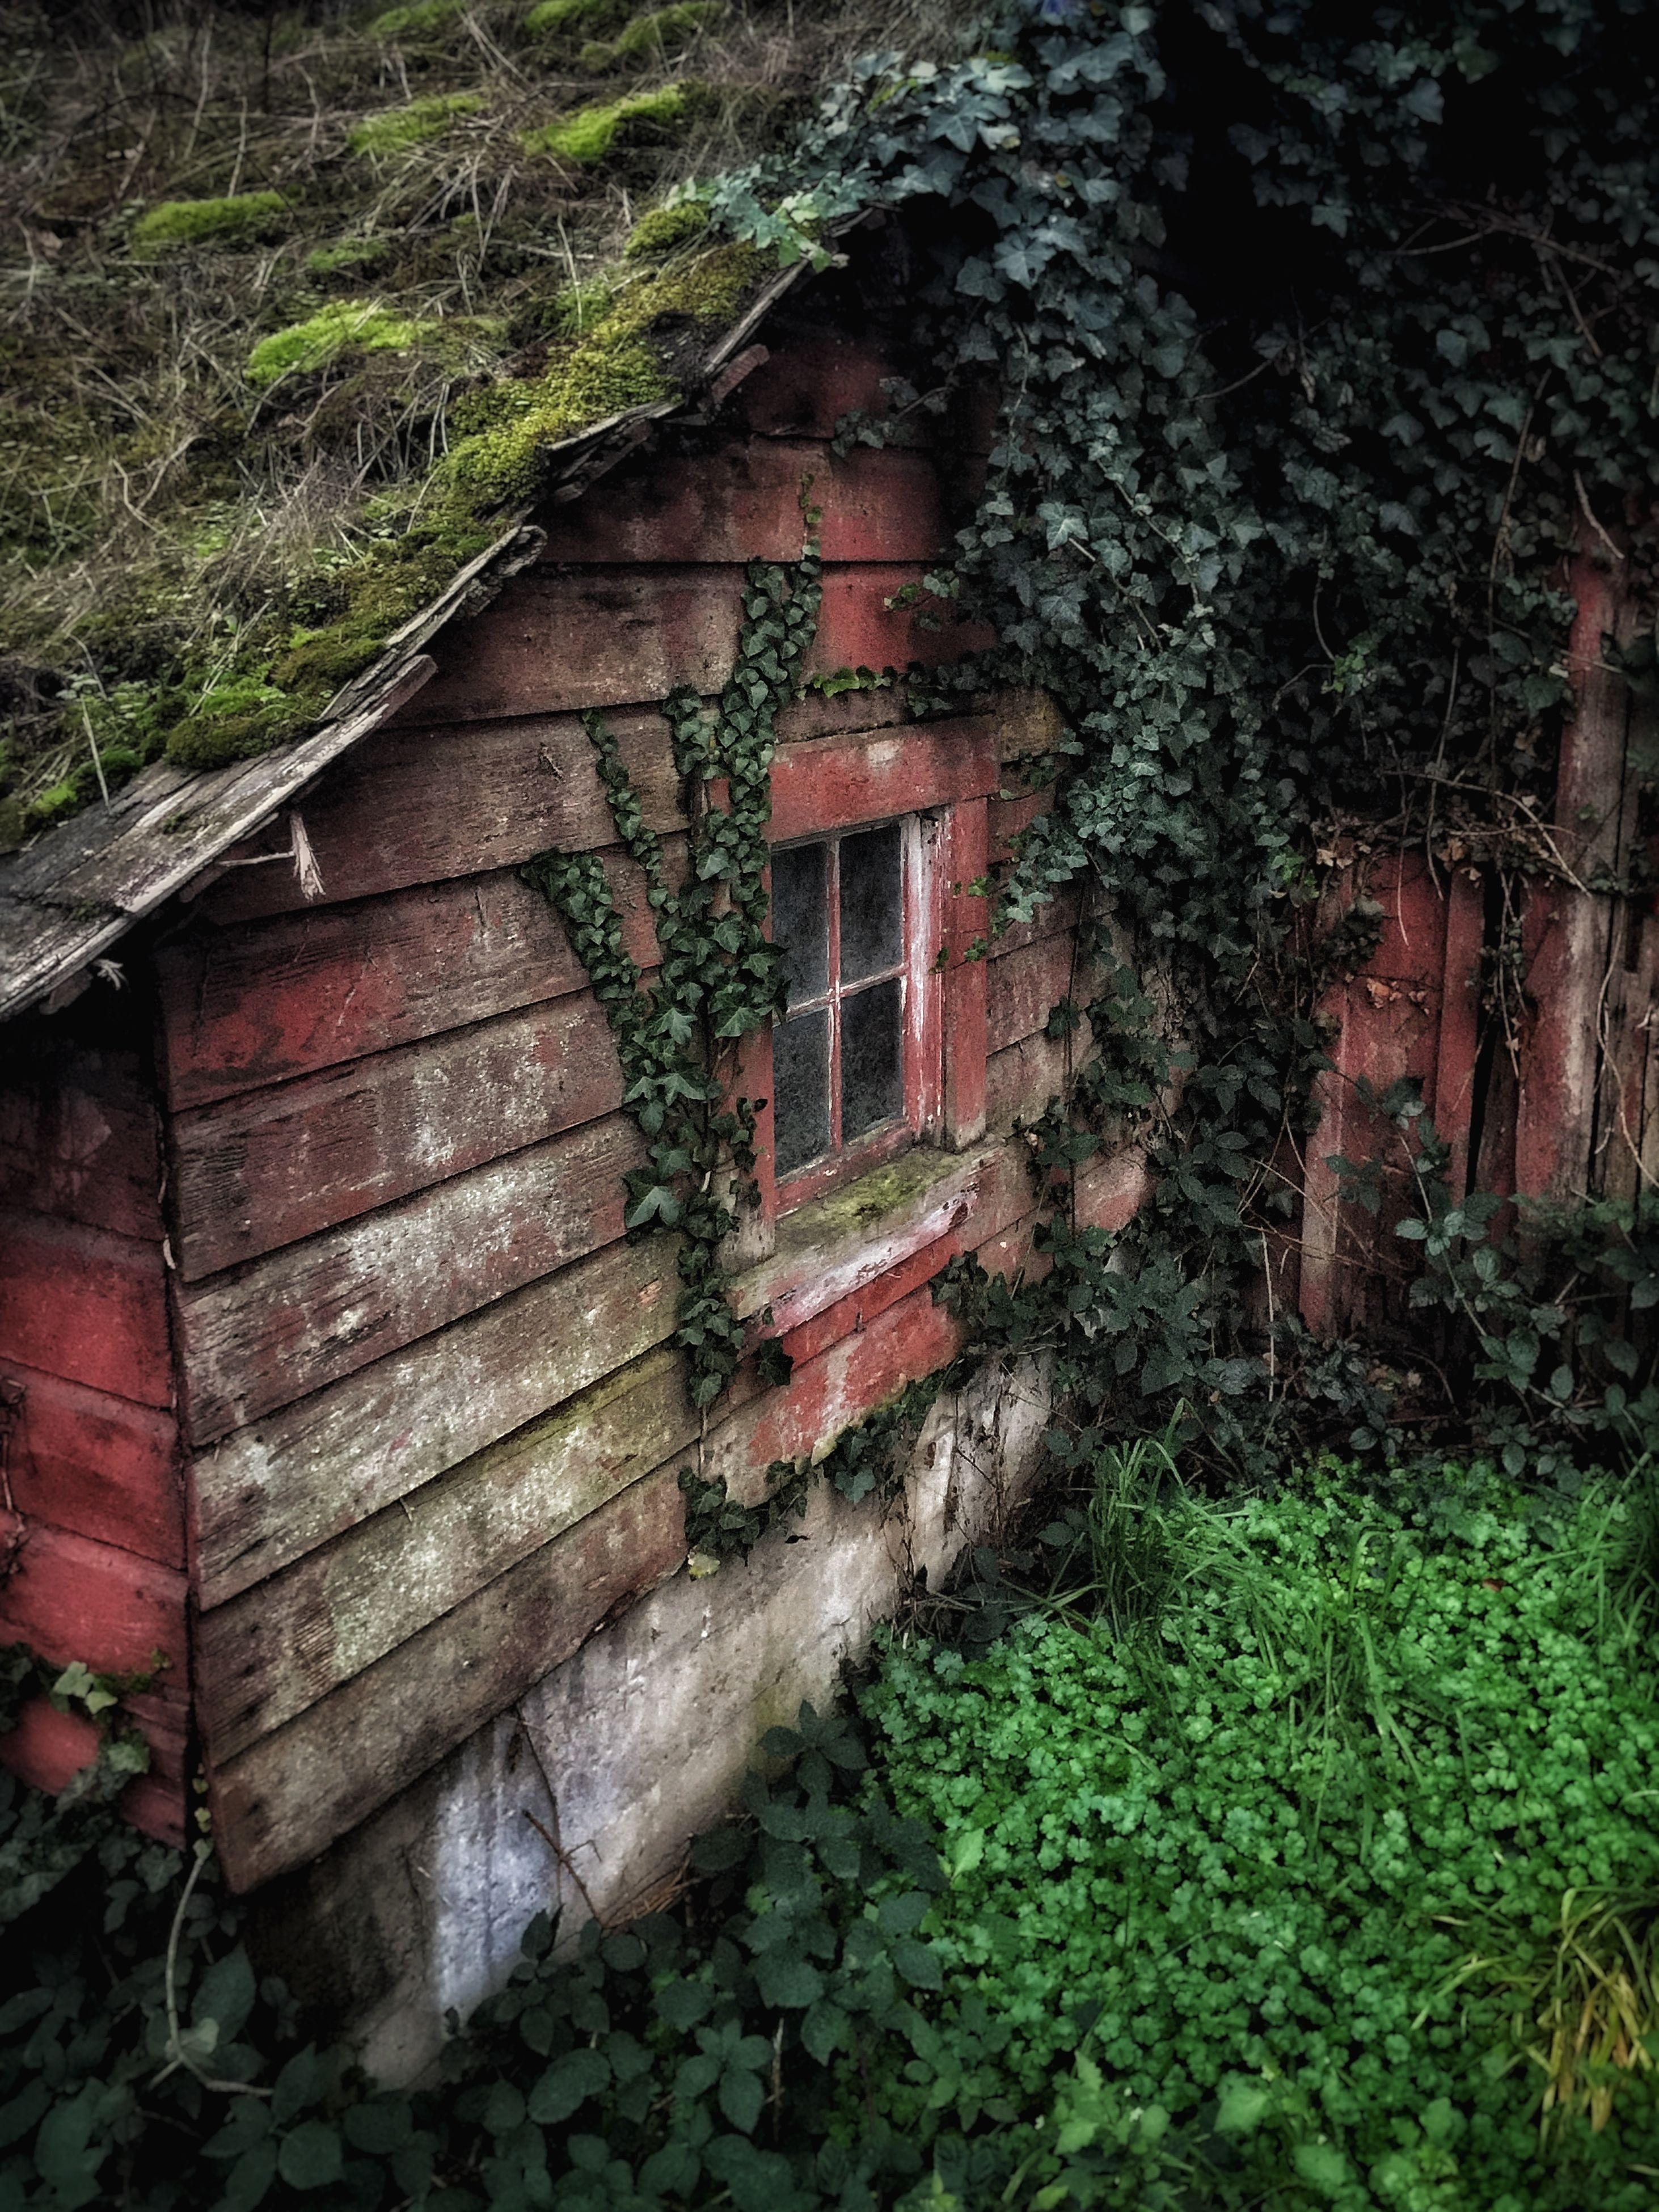 built structure, architecture, building exterior, abandoned, house, old, plant, obsolete, damaged, run-down, deterioration, weathered, residential structure, bad condition, growth, wall - building feature, window, ivy, tree, residential building